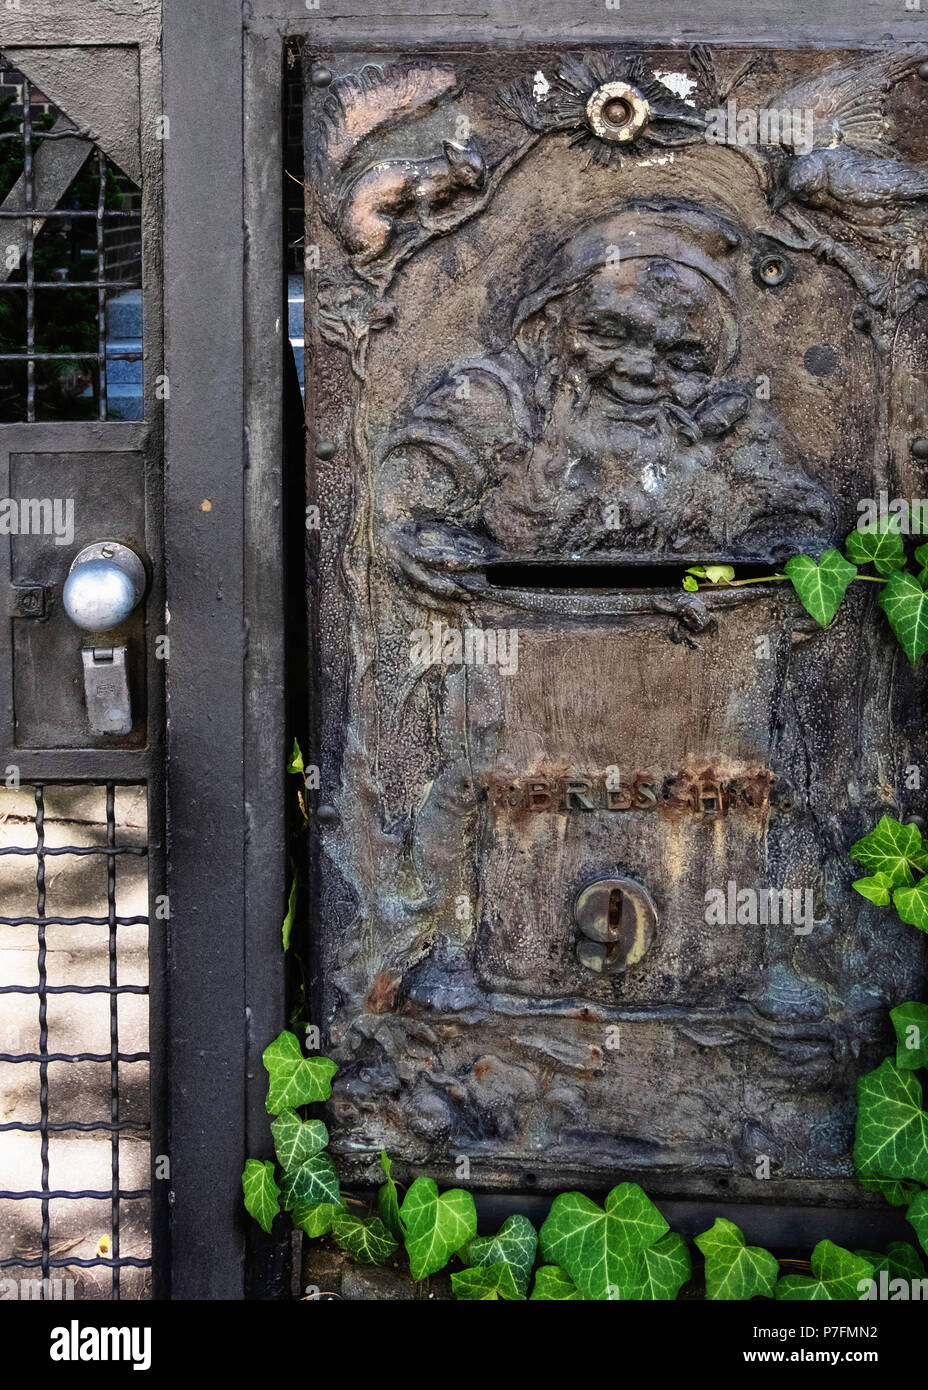 Berlin-Dahlem.dorf. Decorative old mail box, letter box at front gate of suburban home. - Stock Image